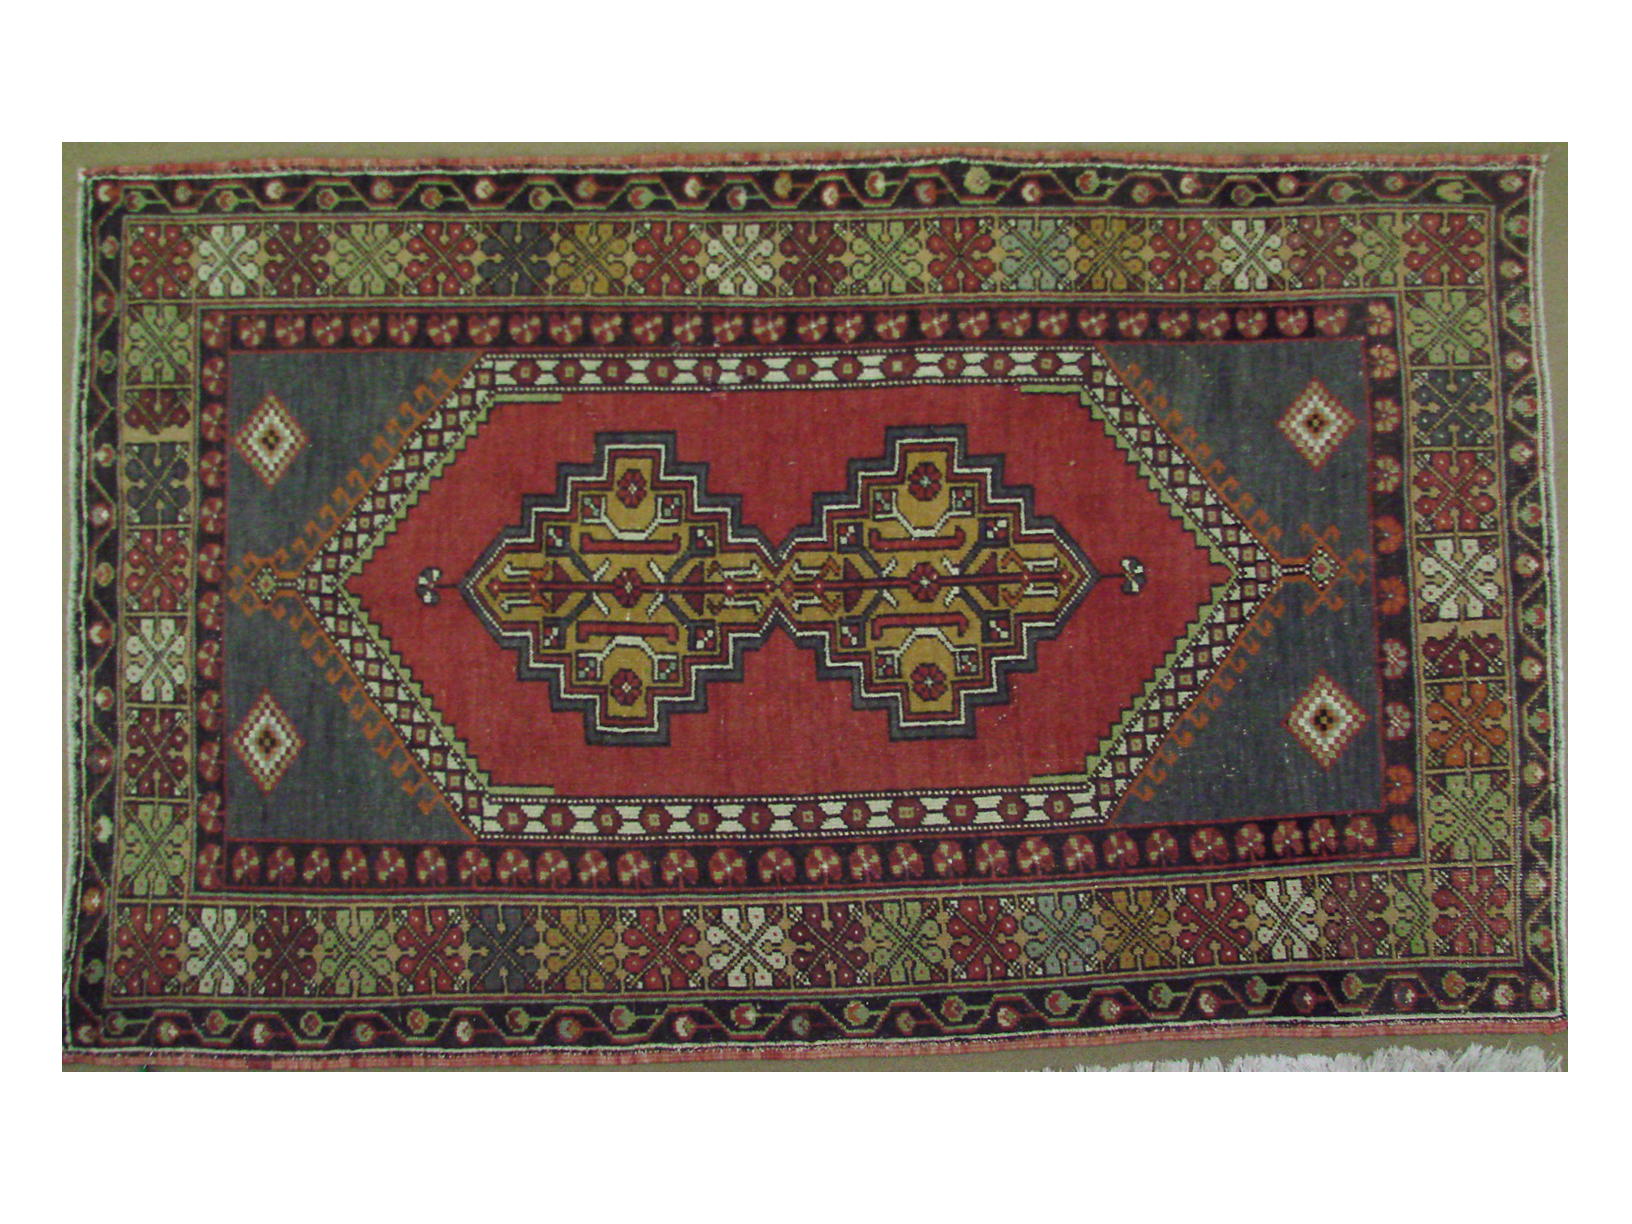 4x6 Vintage Hand Knotted Wool Area Rug - MR021405